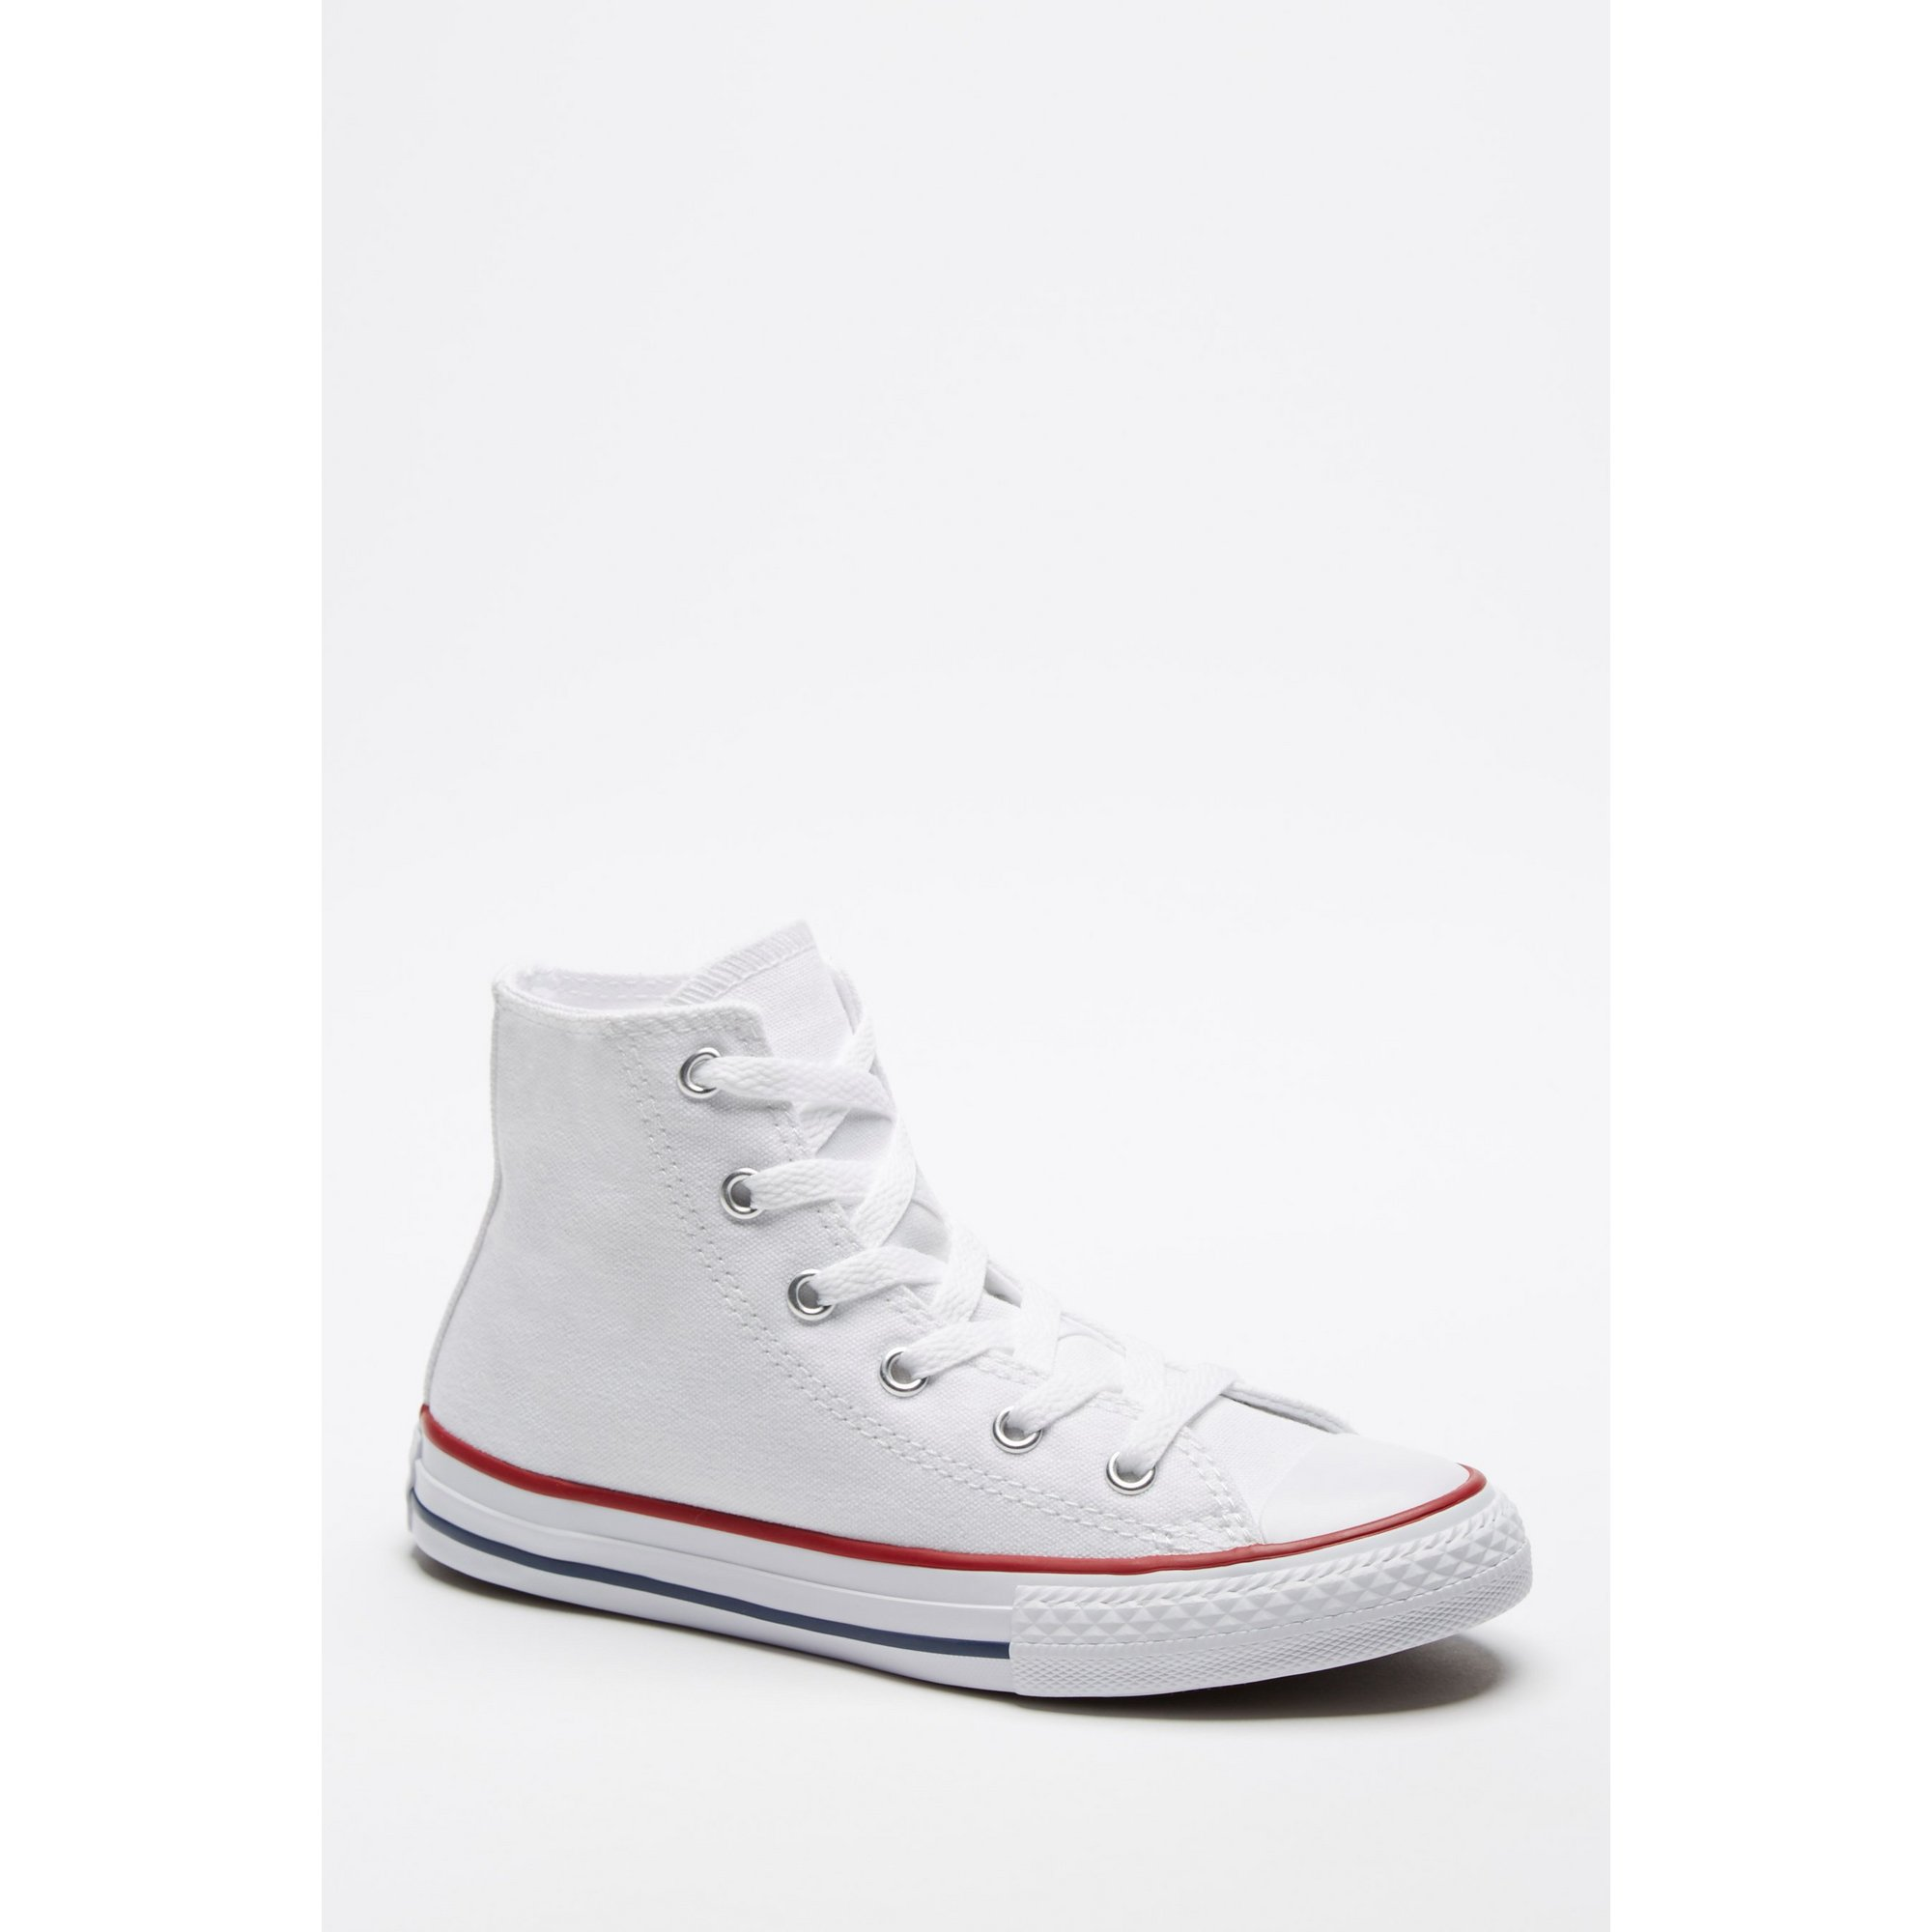 Image of Converse Junior Hi Top Trainers